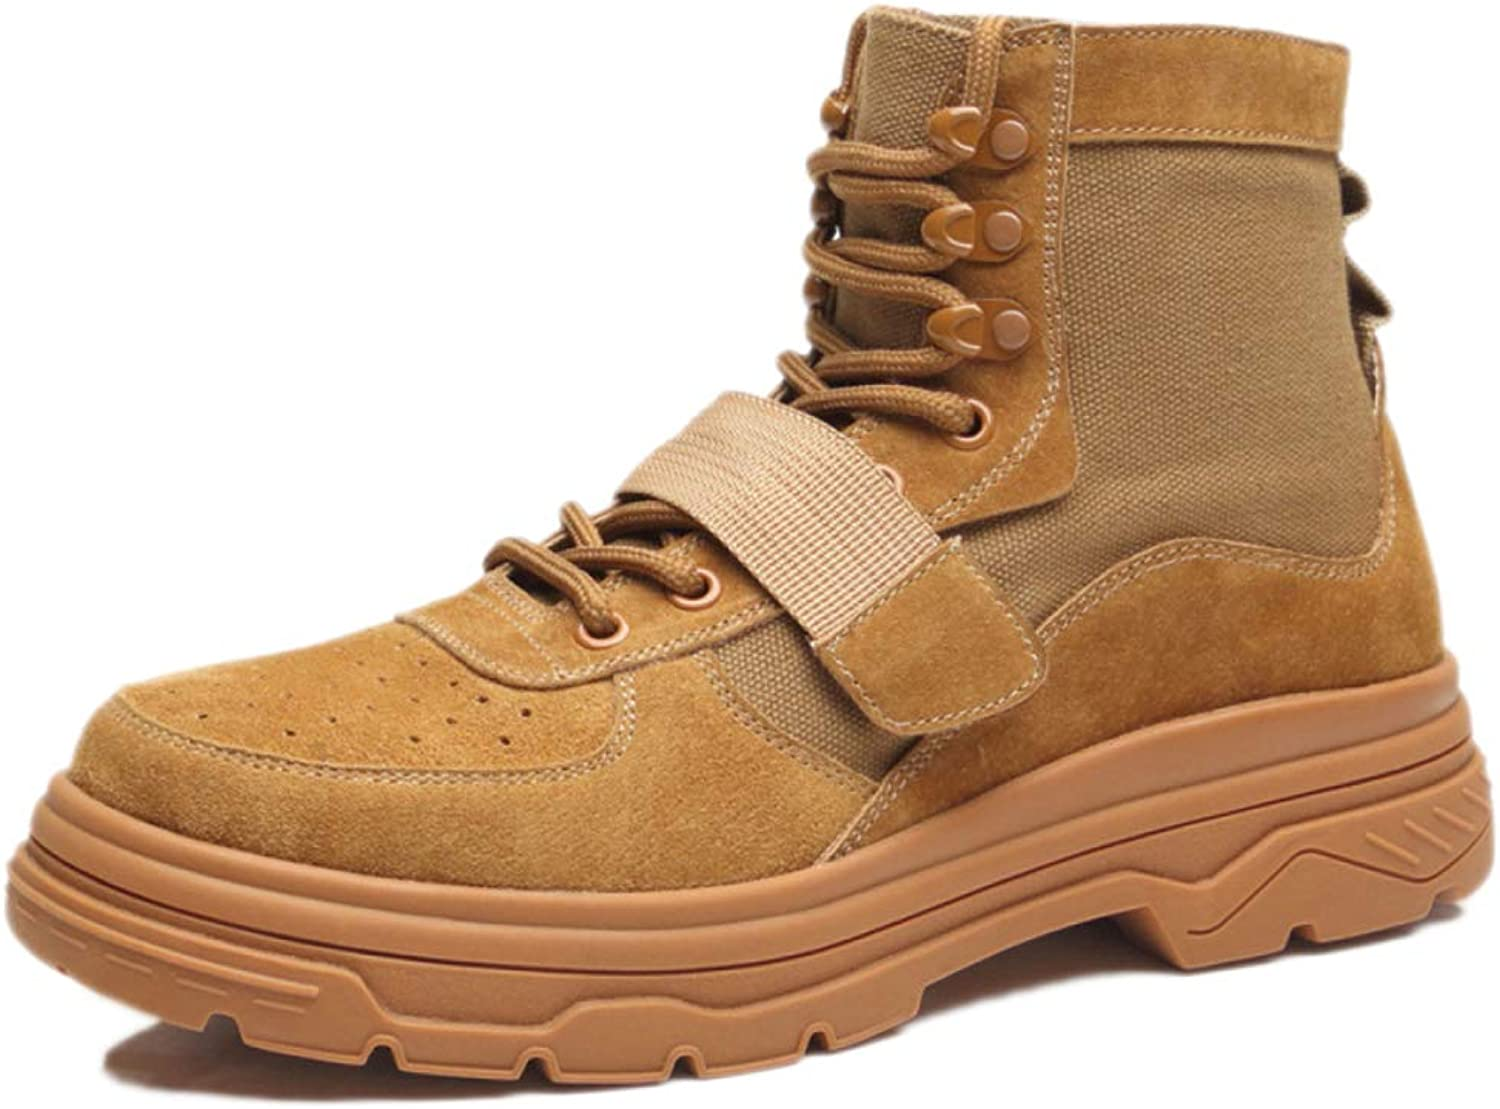 Snfgoij Safety shoes Men Trainers Waterproof Lightweight Walking Martin Boots Ankle Boots High Cut Leather Military Boots,Brown-39